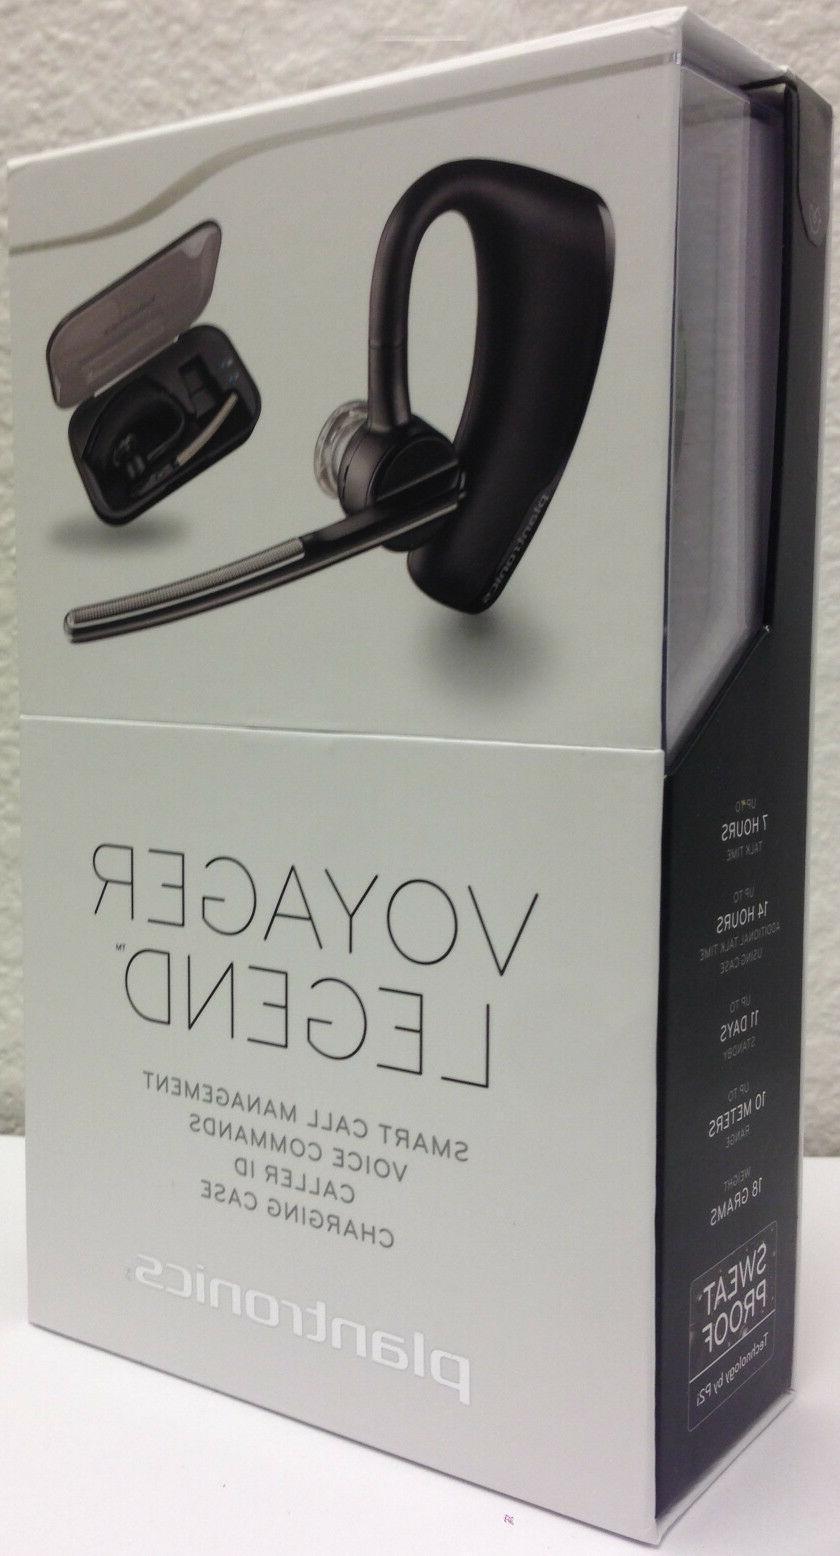 voyager legend bluetooth headset and charge case